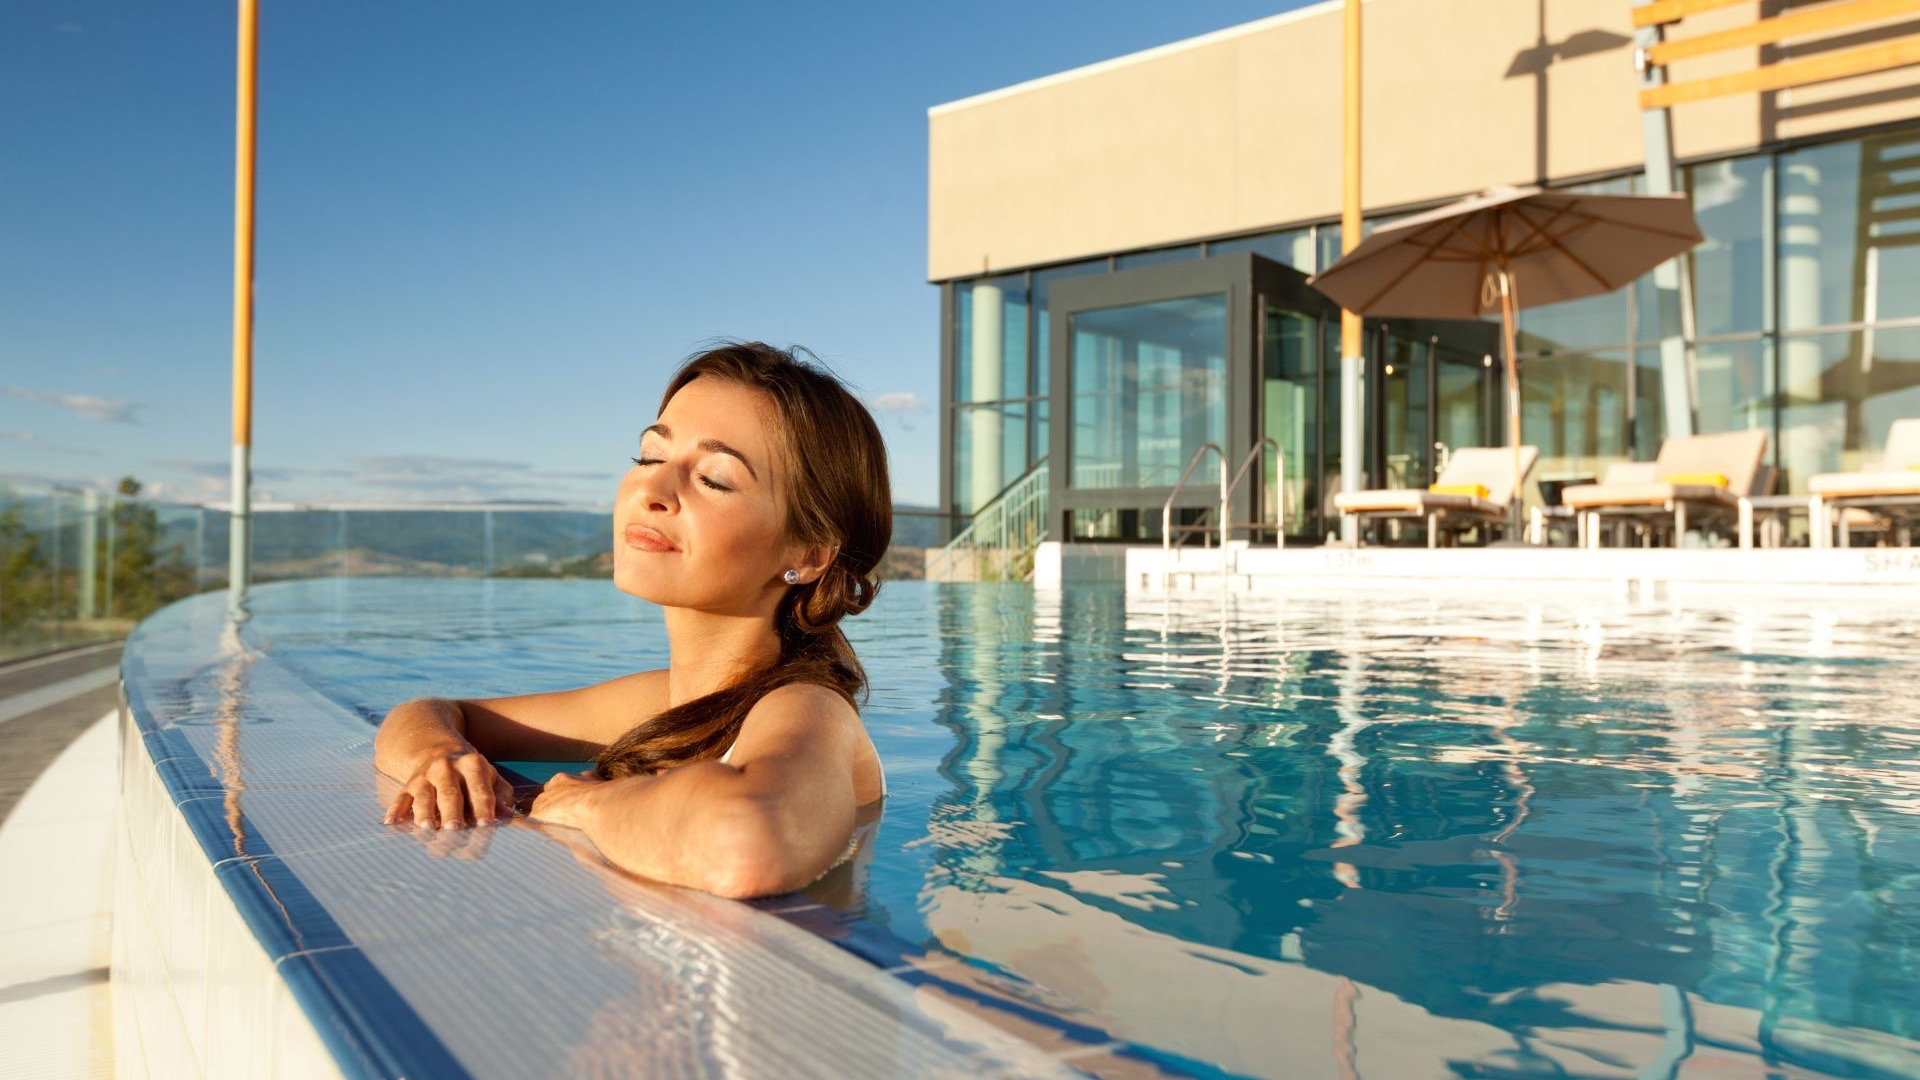 Spas of america launches 500 of the world s best spas in for Best health spas in the us